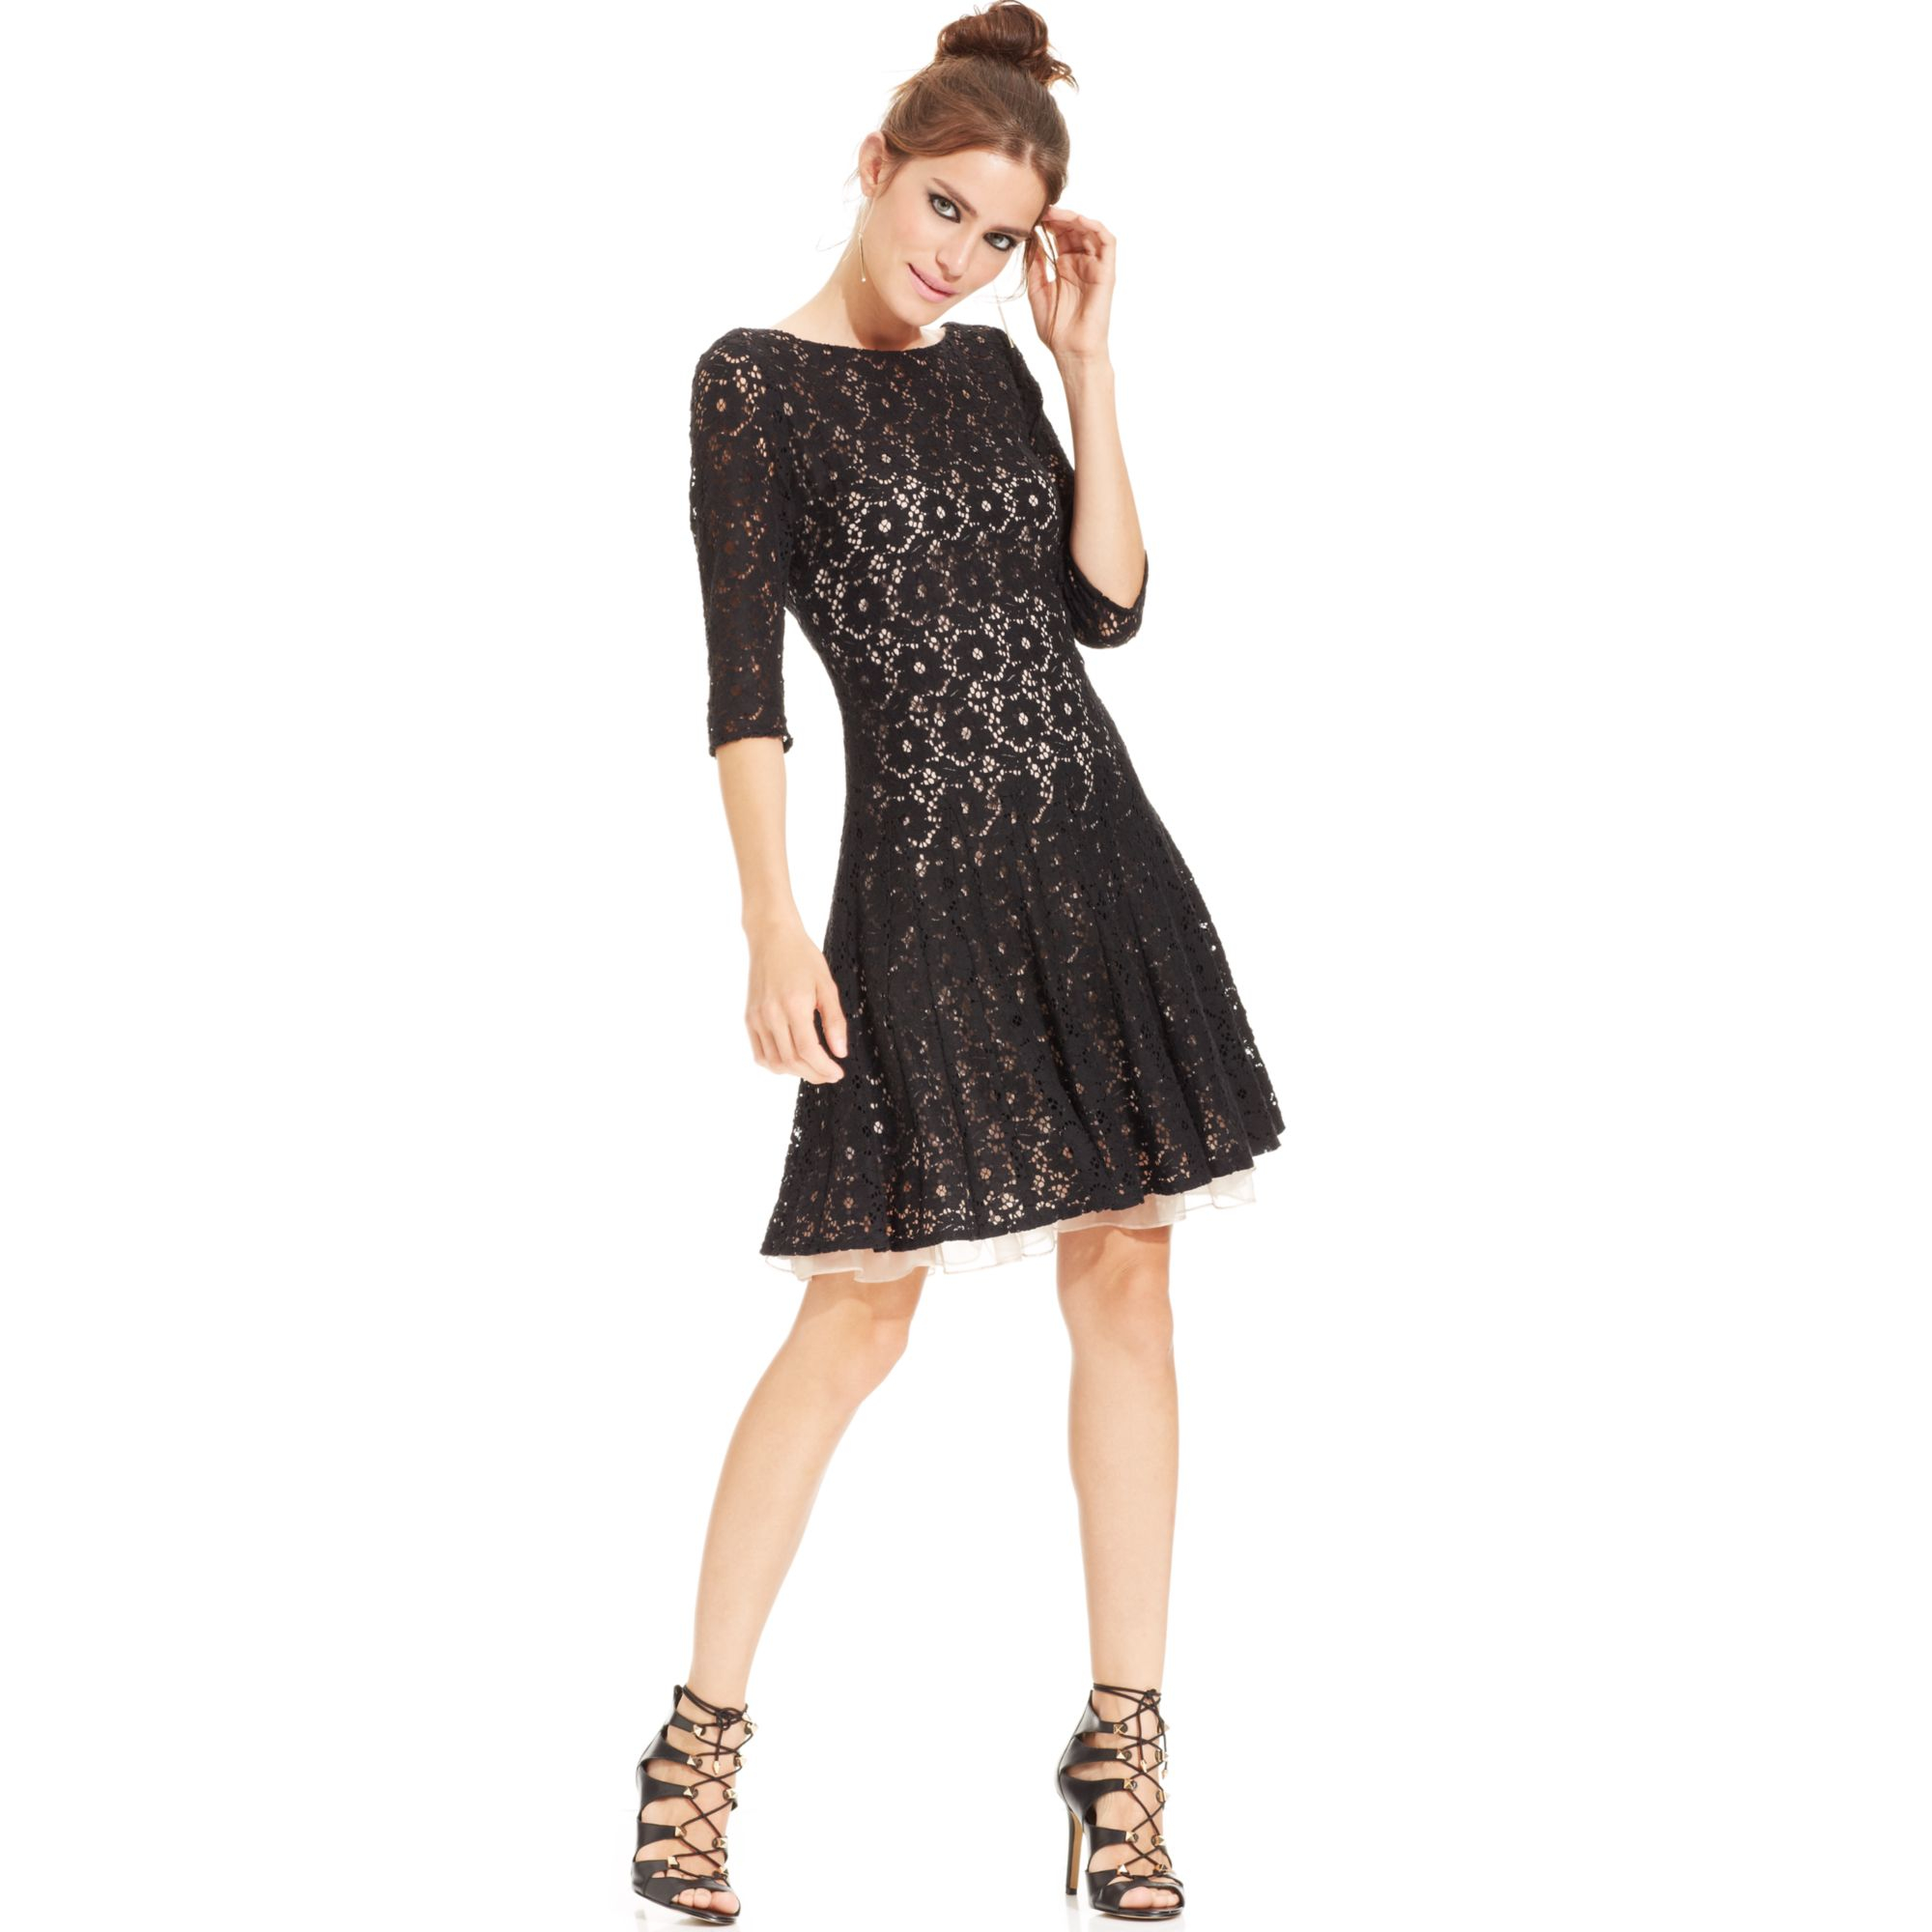 Betsey Johnson Contrastlace Pleated Dress In Black Lyst